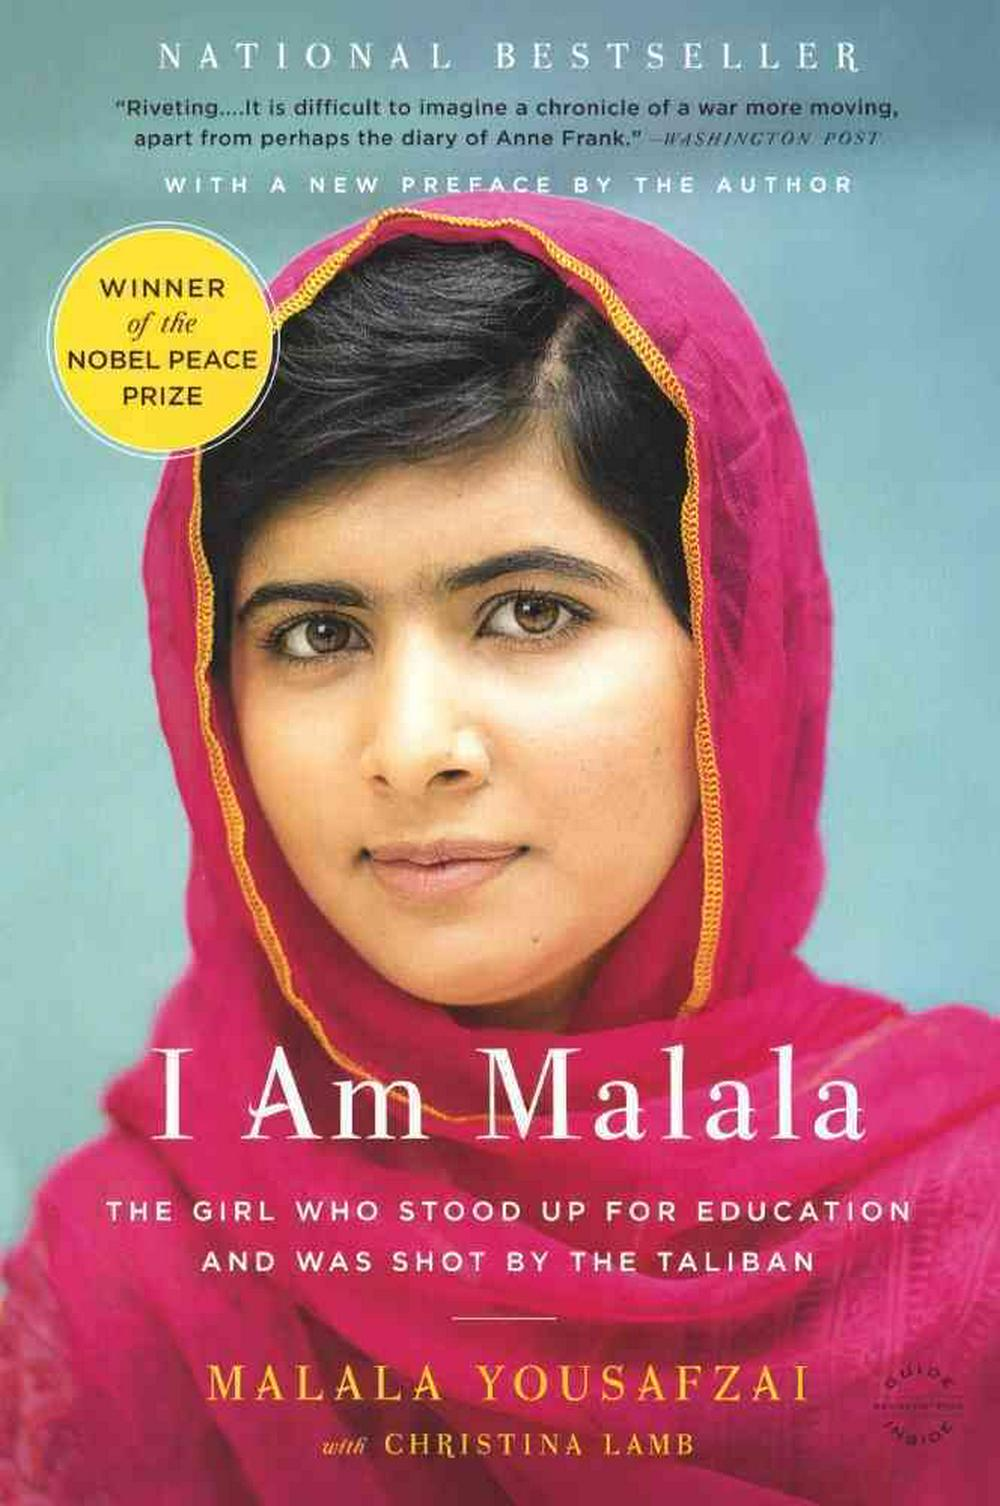 I Am Malala (Young Reader's Edition)